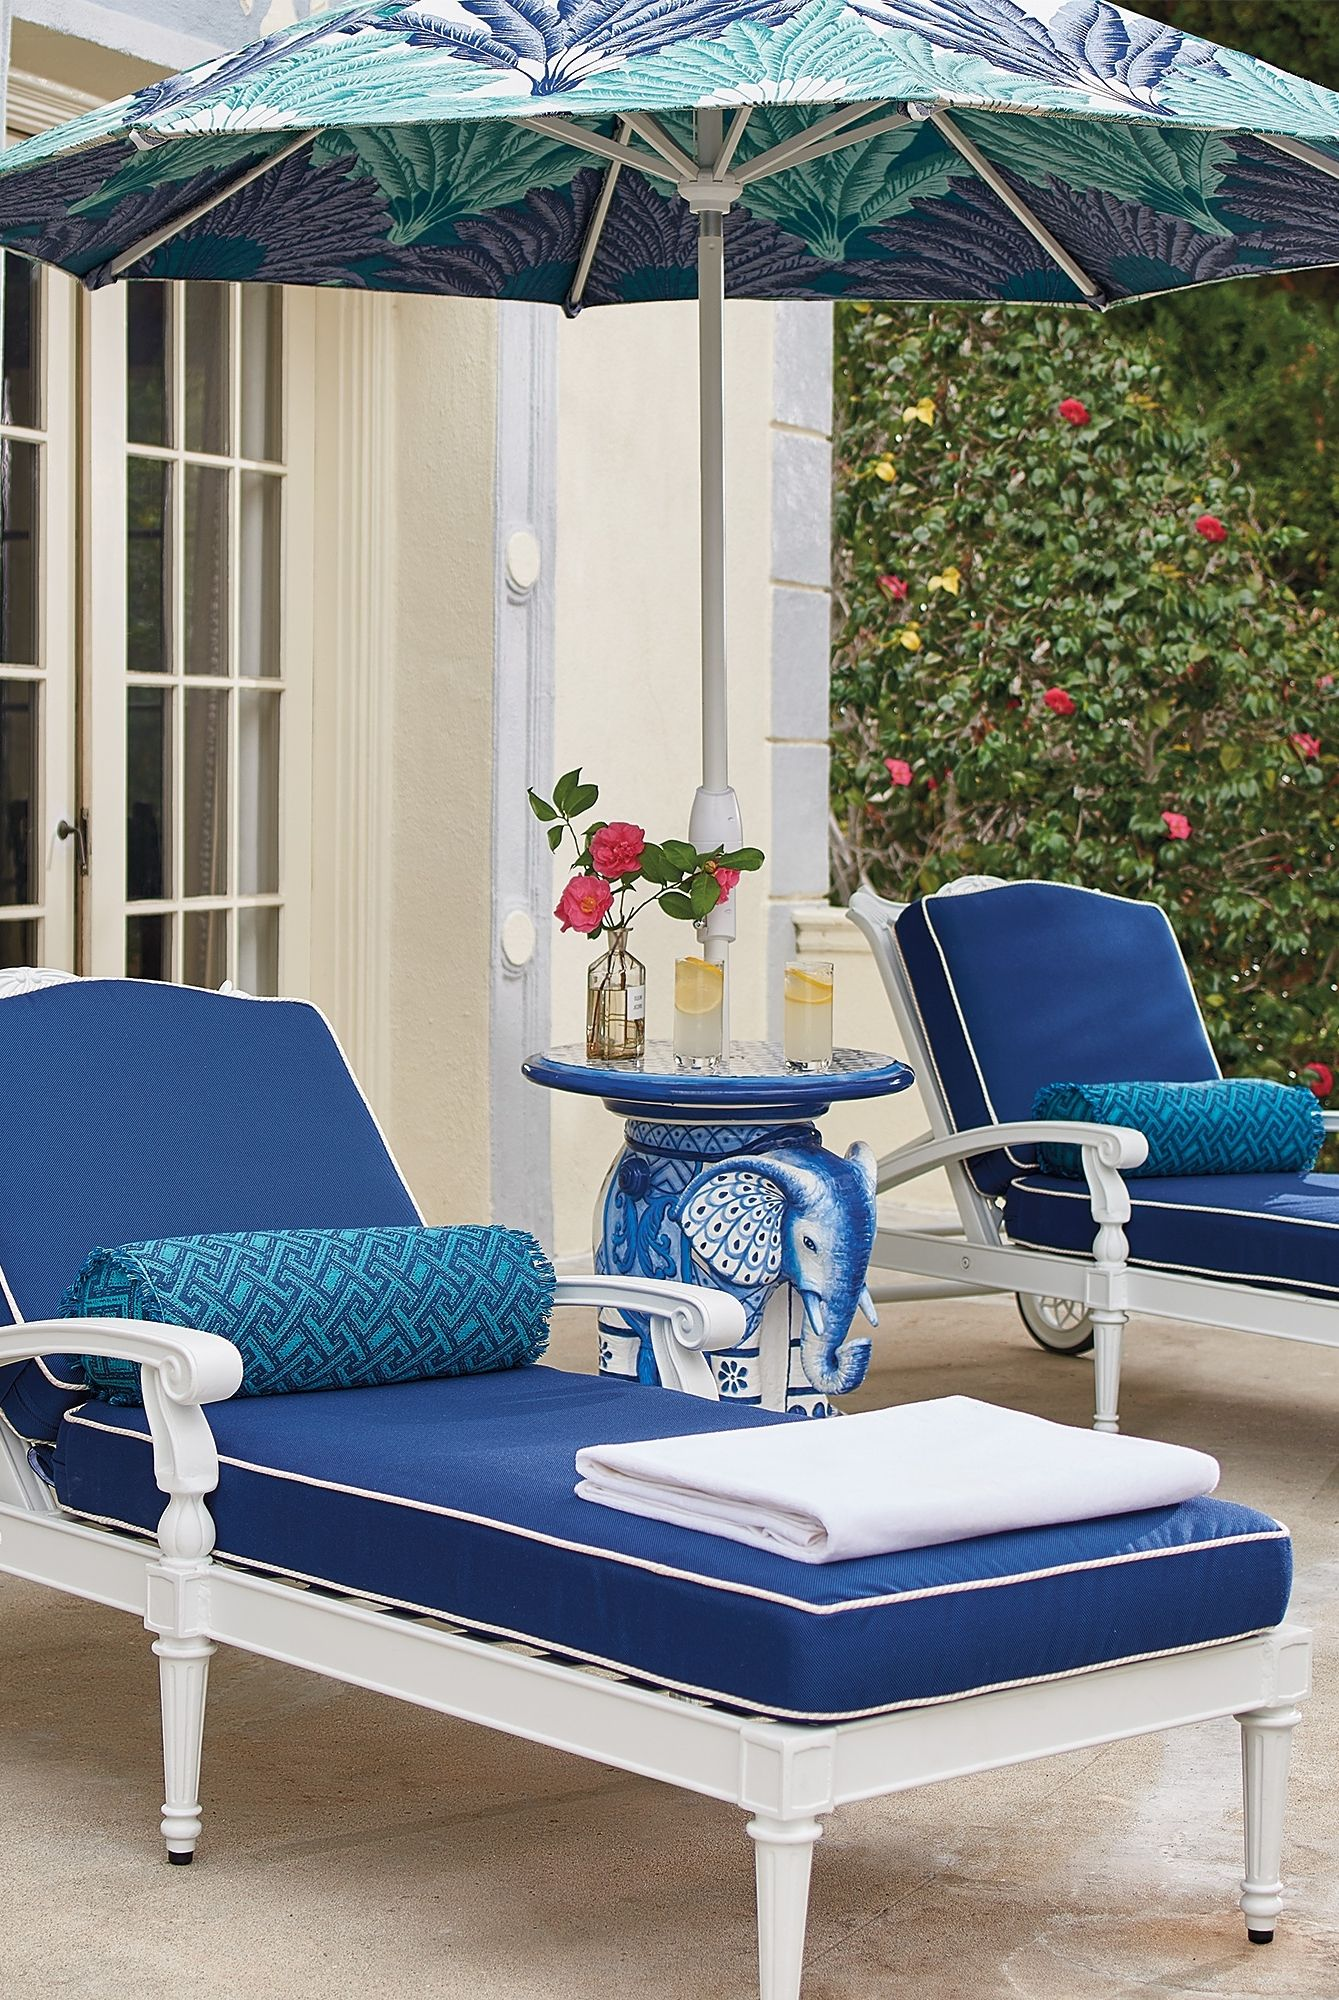 frontgate outdoor lounge chairs office chair with footrest uk inspired by neoclassical interiors our glen isle white